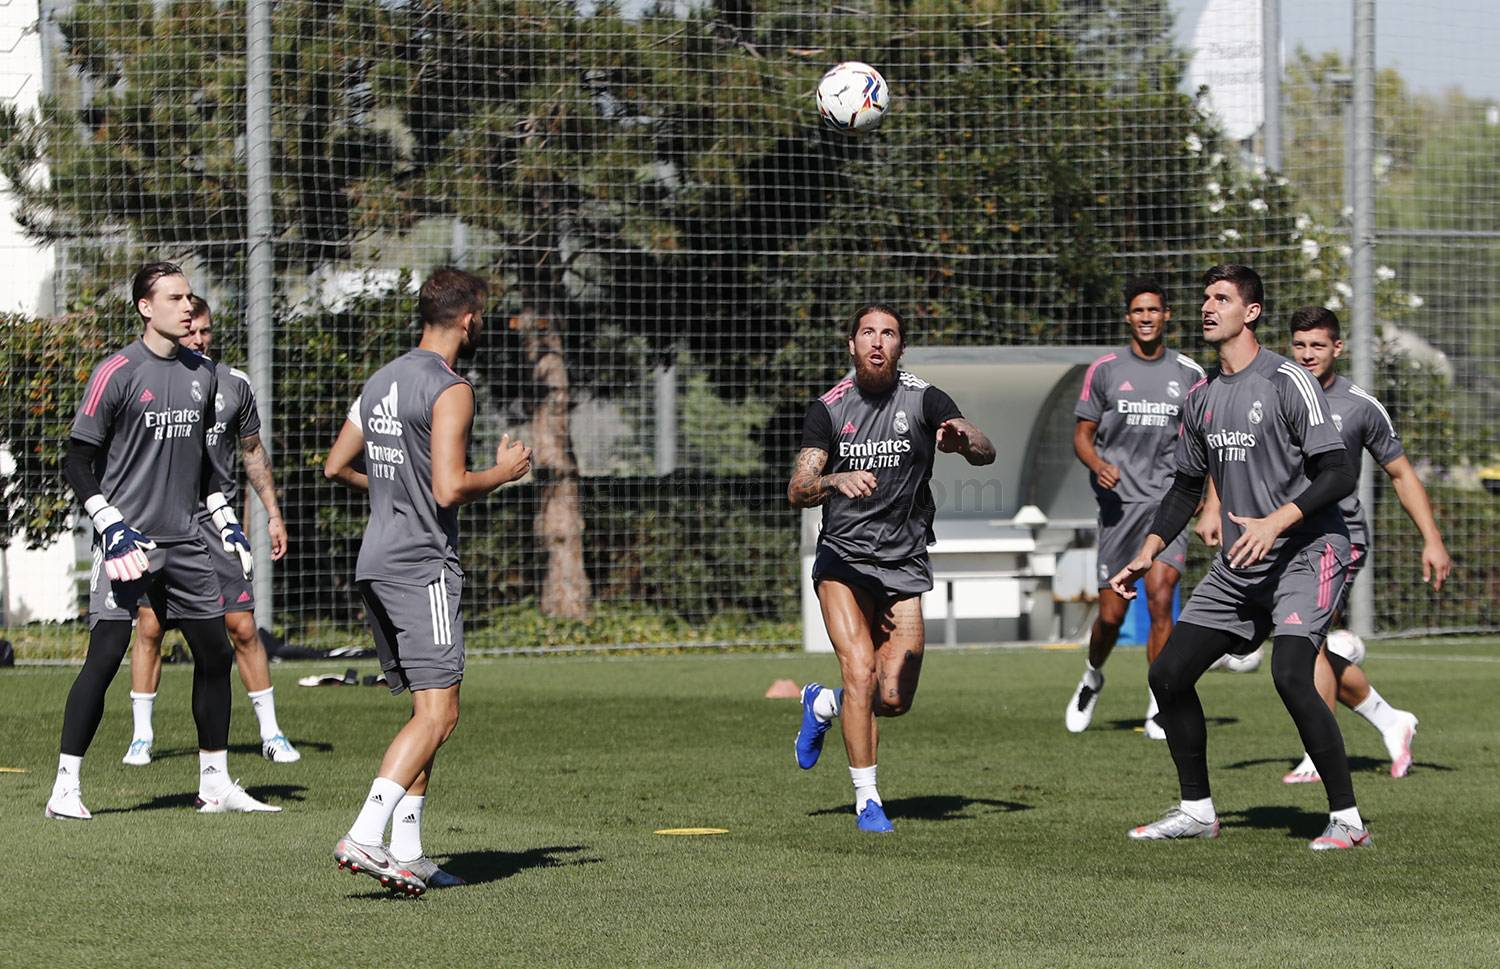 Real Madrid - Entrenamiento del Real Madrid  - 10-09-2020